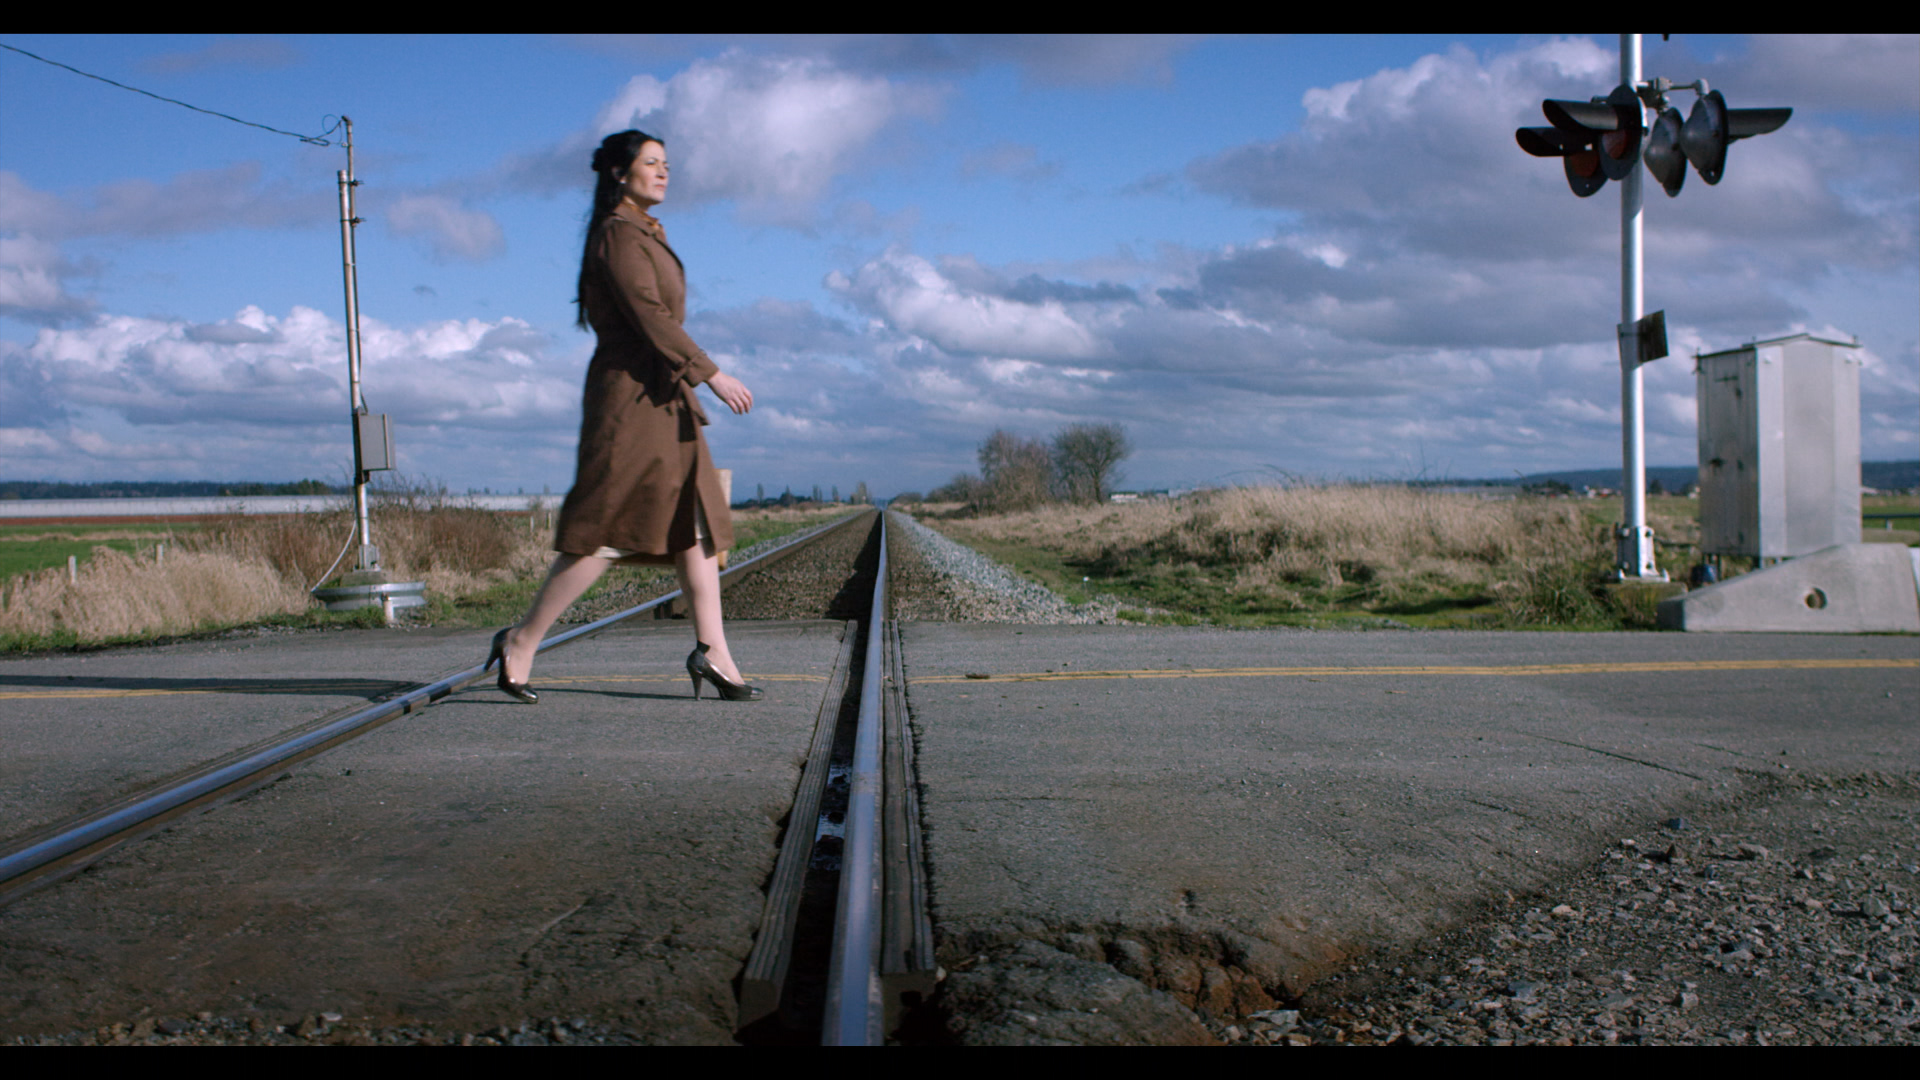 woman walking down rural road